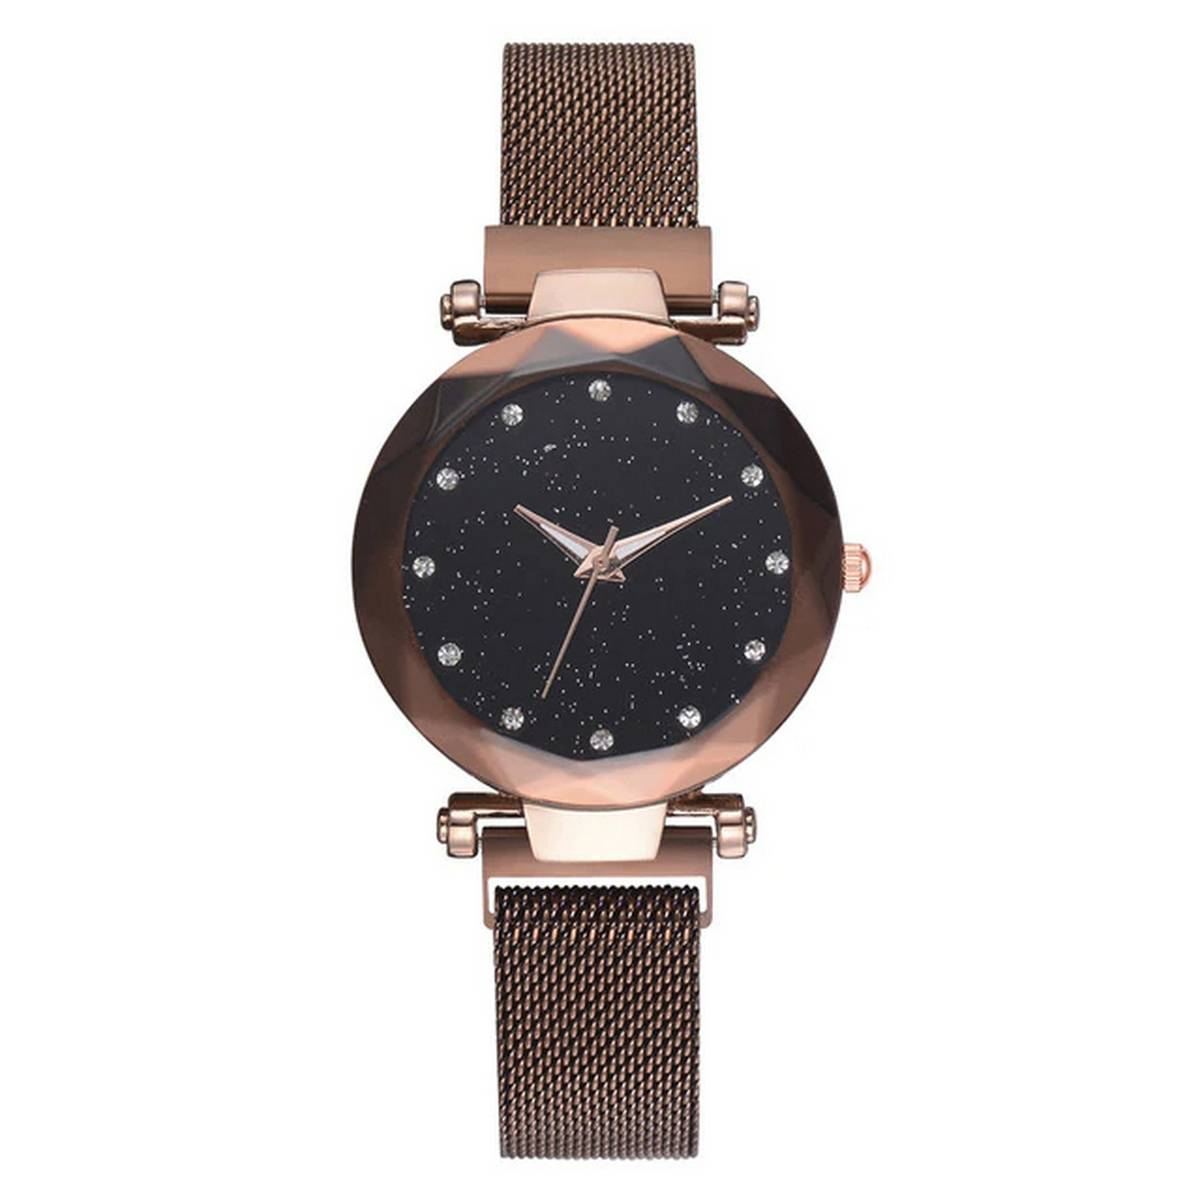 Magnet Analogue Women Watches Fashion Starry Sky Waterproof Wrist Quartz Watch Stainless Steel Band Strap Bracelet Diamond - Magnetic Strap Casual Wristwatch For Ladies and Girls - Model 2021